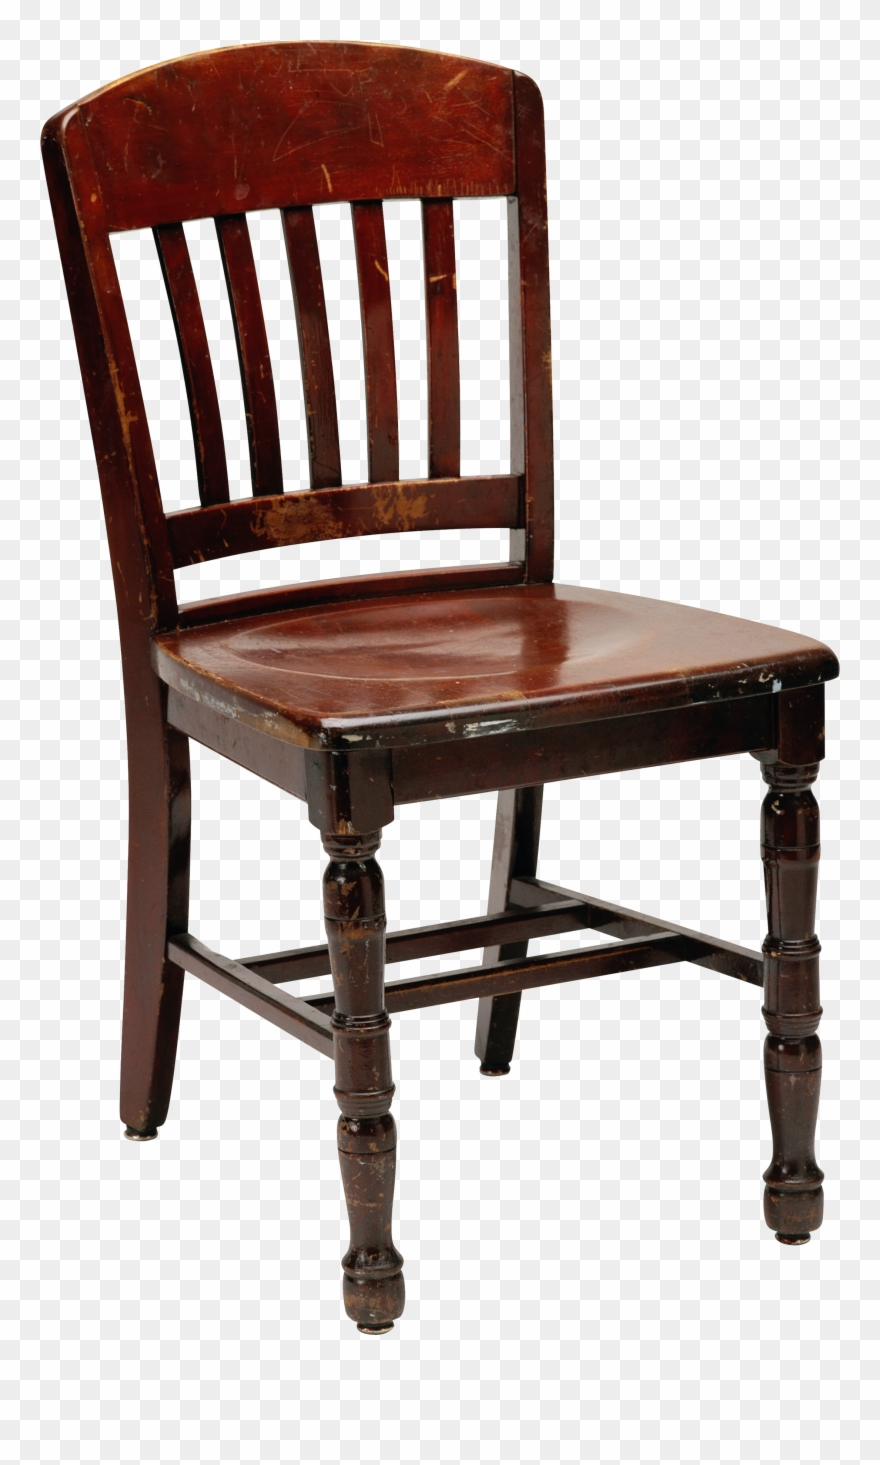 Chair Png Images Hd Clipart (#1293966).